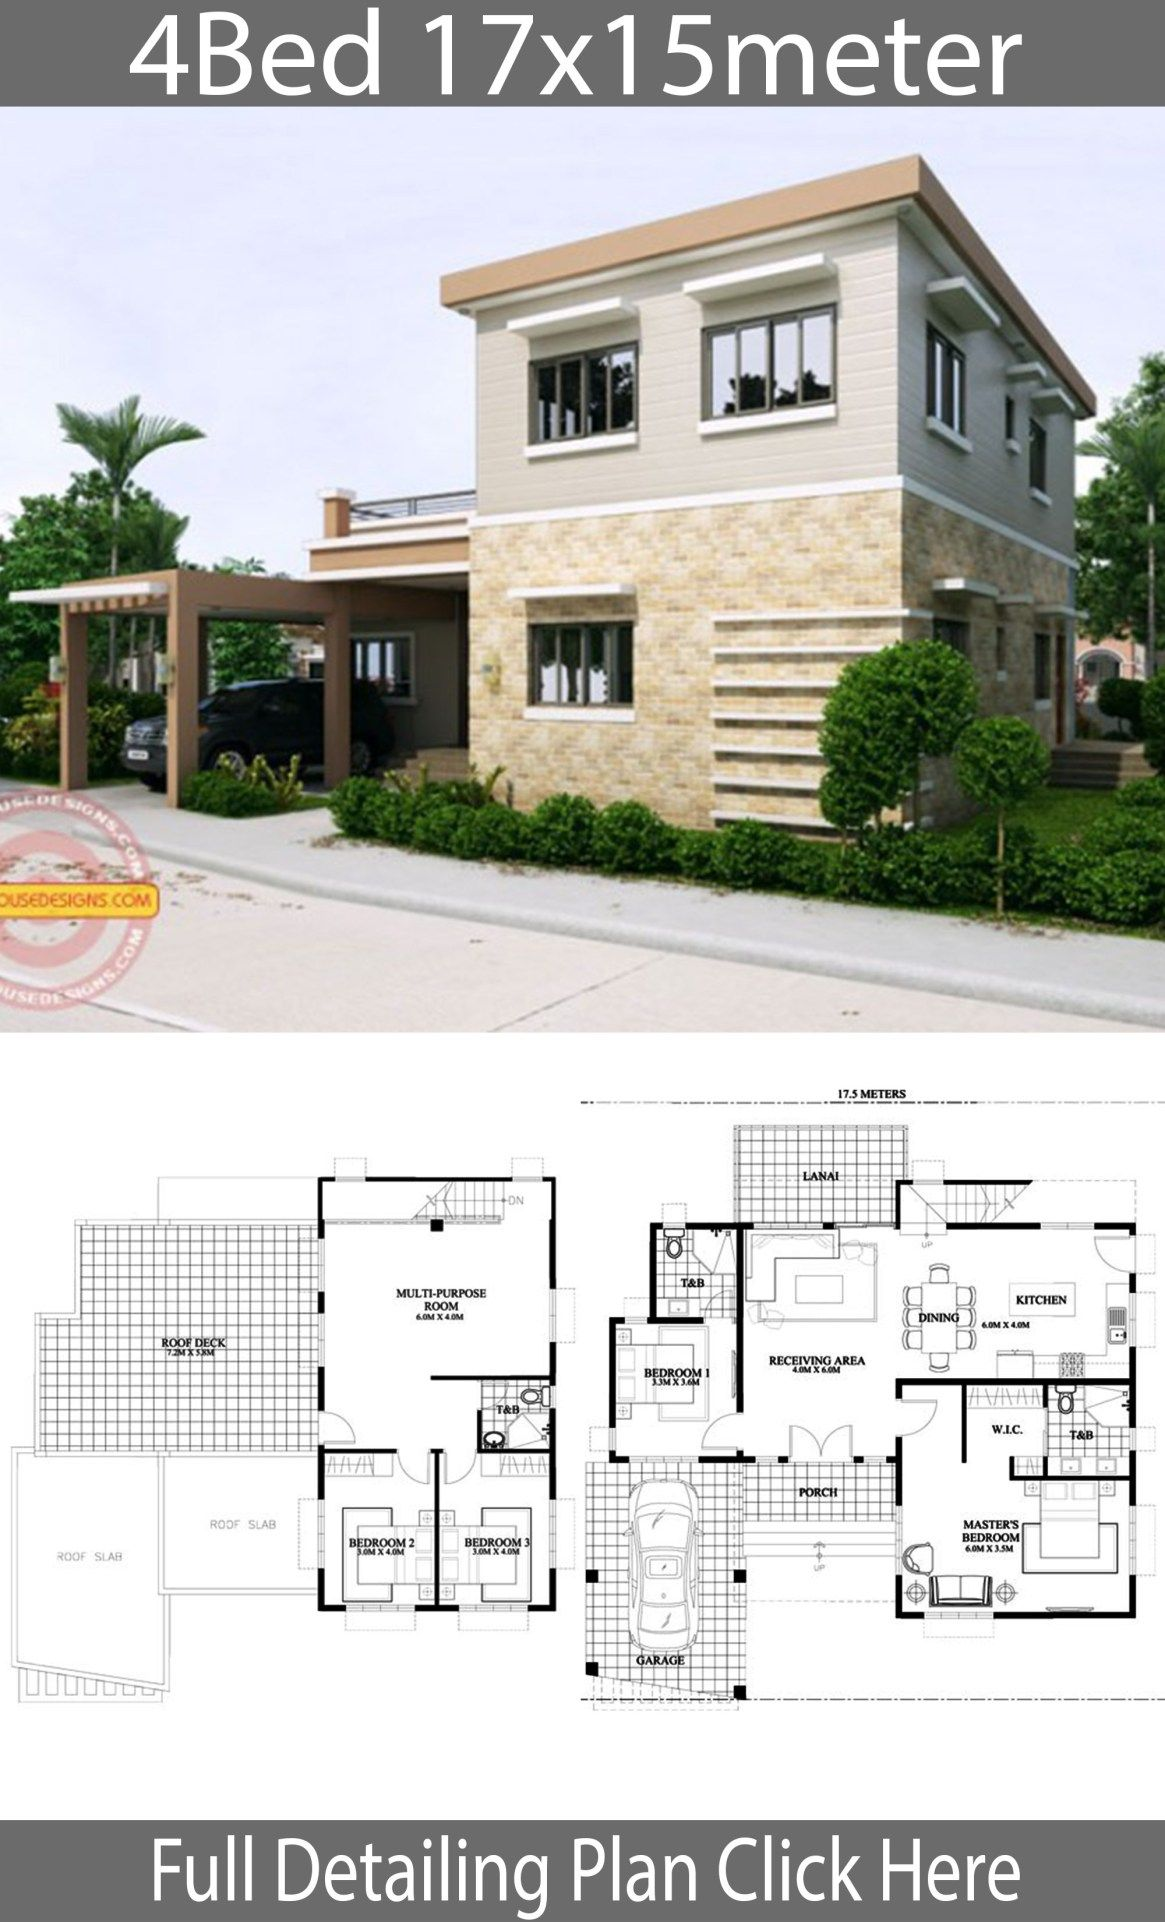 Home Design 17x15m With 4 Bedrooms Home Design With Plansearch House Design Home Building Design 2 Storey House Design